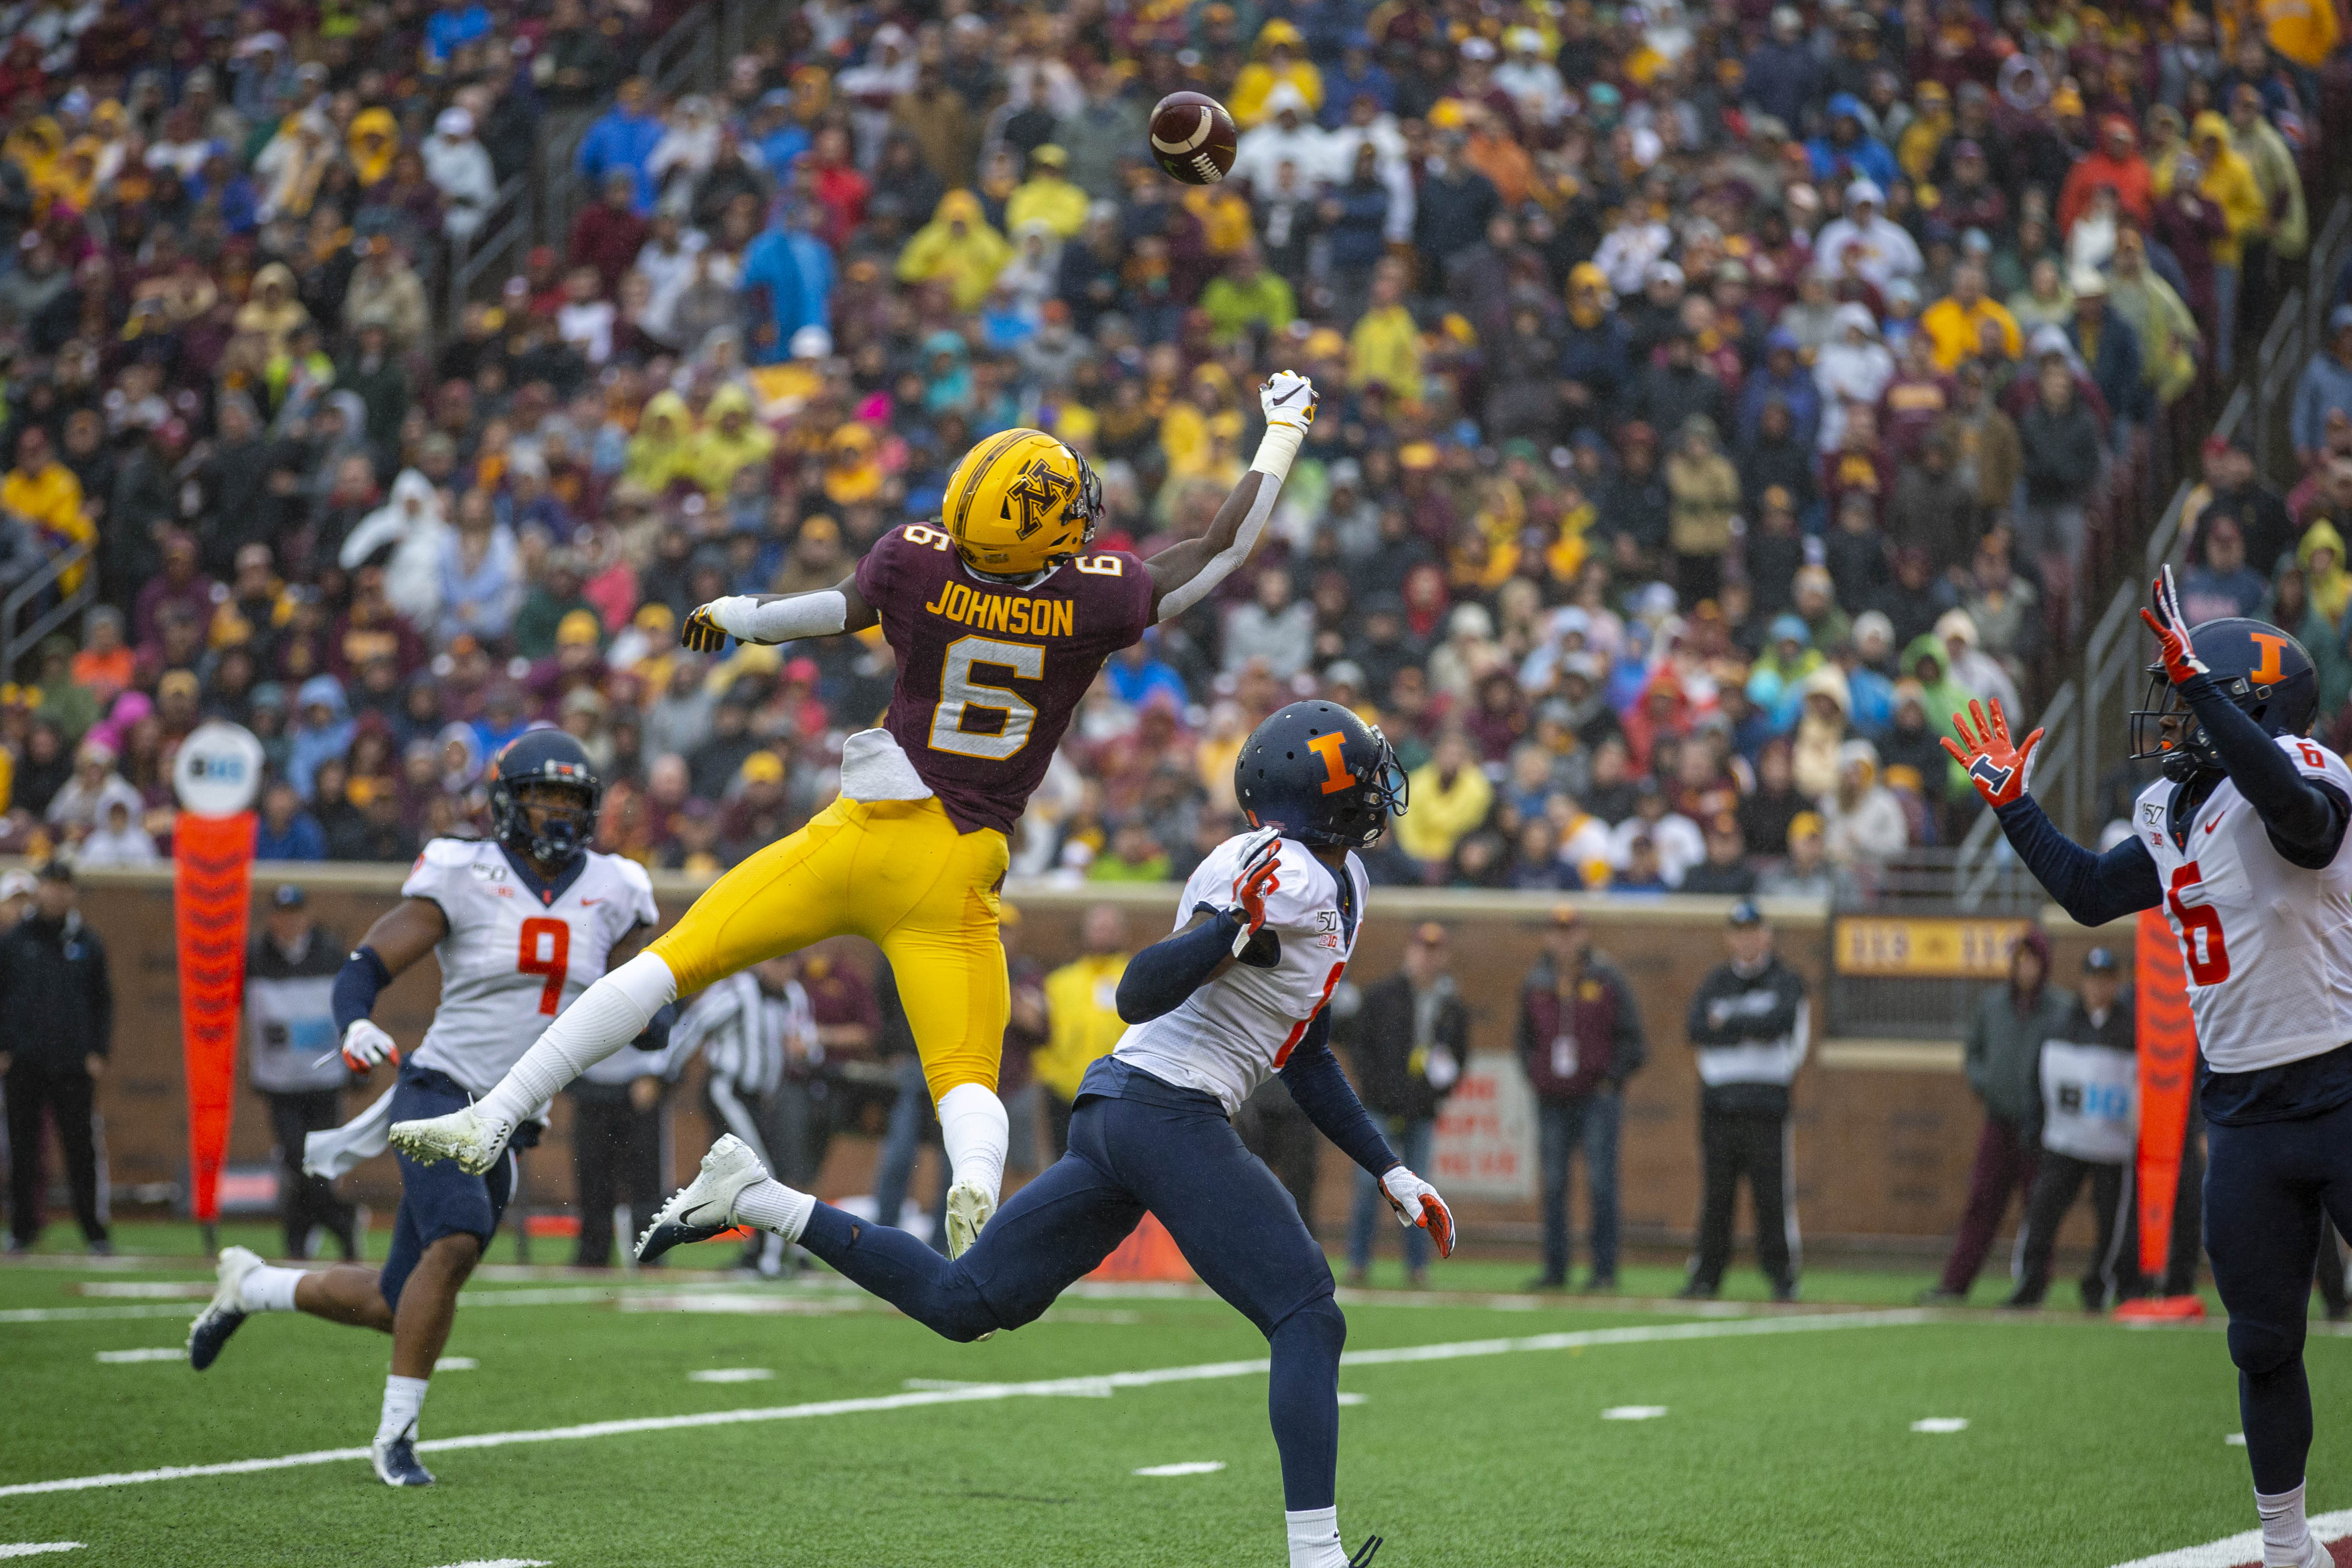 Oct 5, 2019; Minneapolis, MN, USA; Minnesota Golden Gophers running back Rodney Smith (1) rushes with the ball as Illinois Fighting Illini defensive back Jartavius Martin (21) and defensive back Tony Adams (6) attempt to make a tackle in the first half at TCF Bank Stadium. Mandatory Credit: Jesse Johnson-USA TODAY Sports